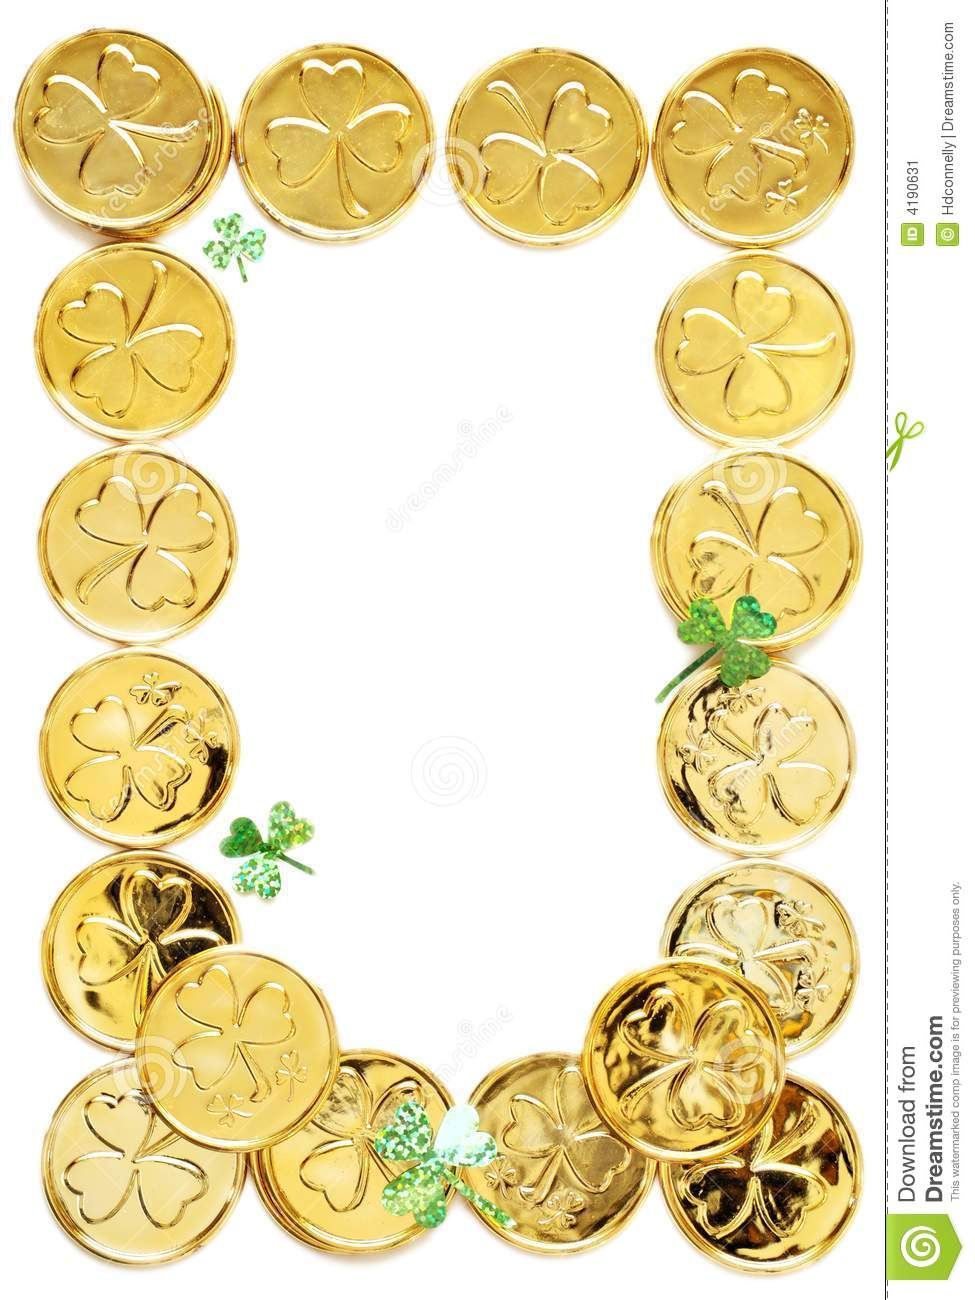 St Patricks Day Coins Stock Image - Image: 4190631